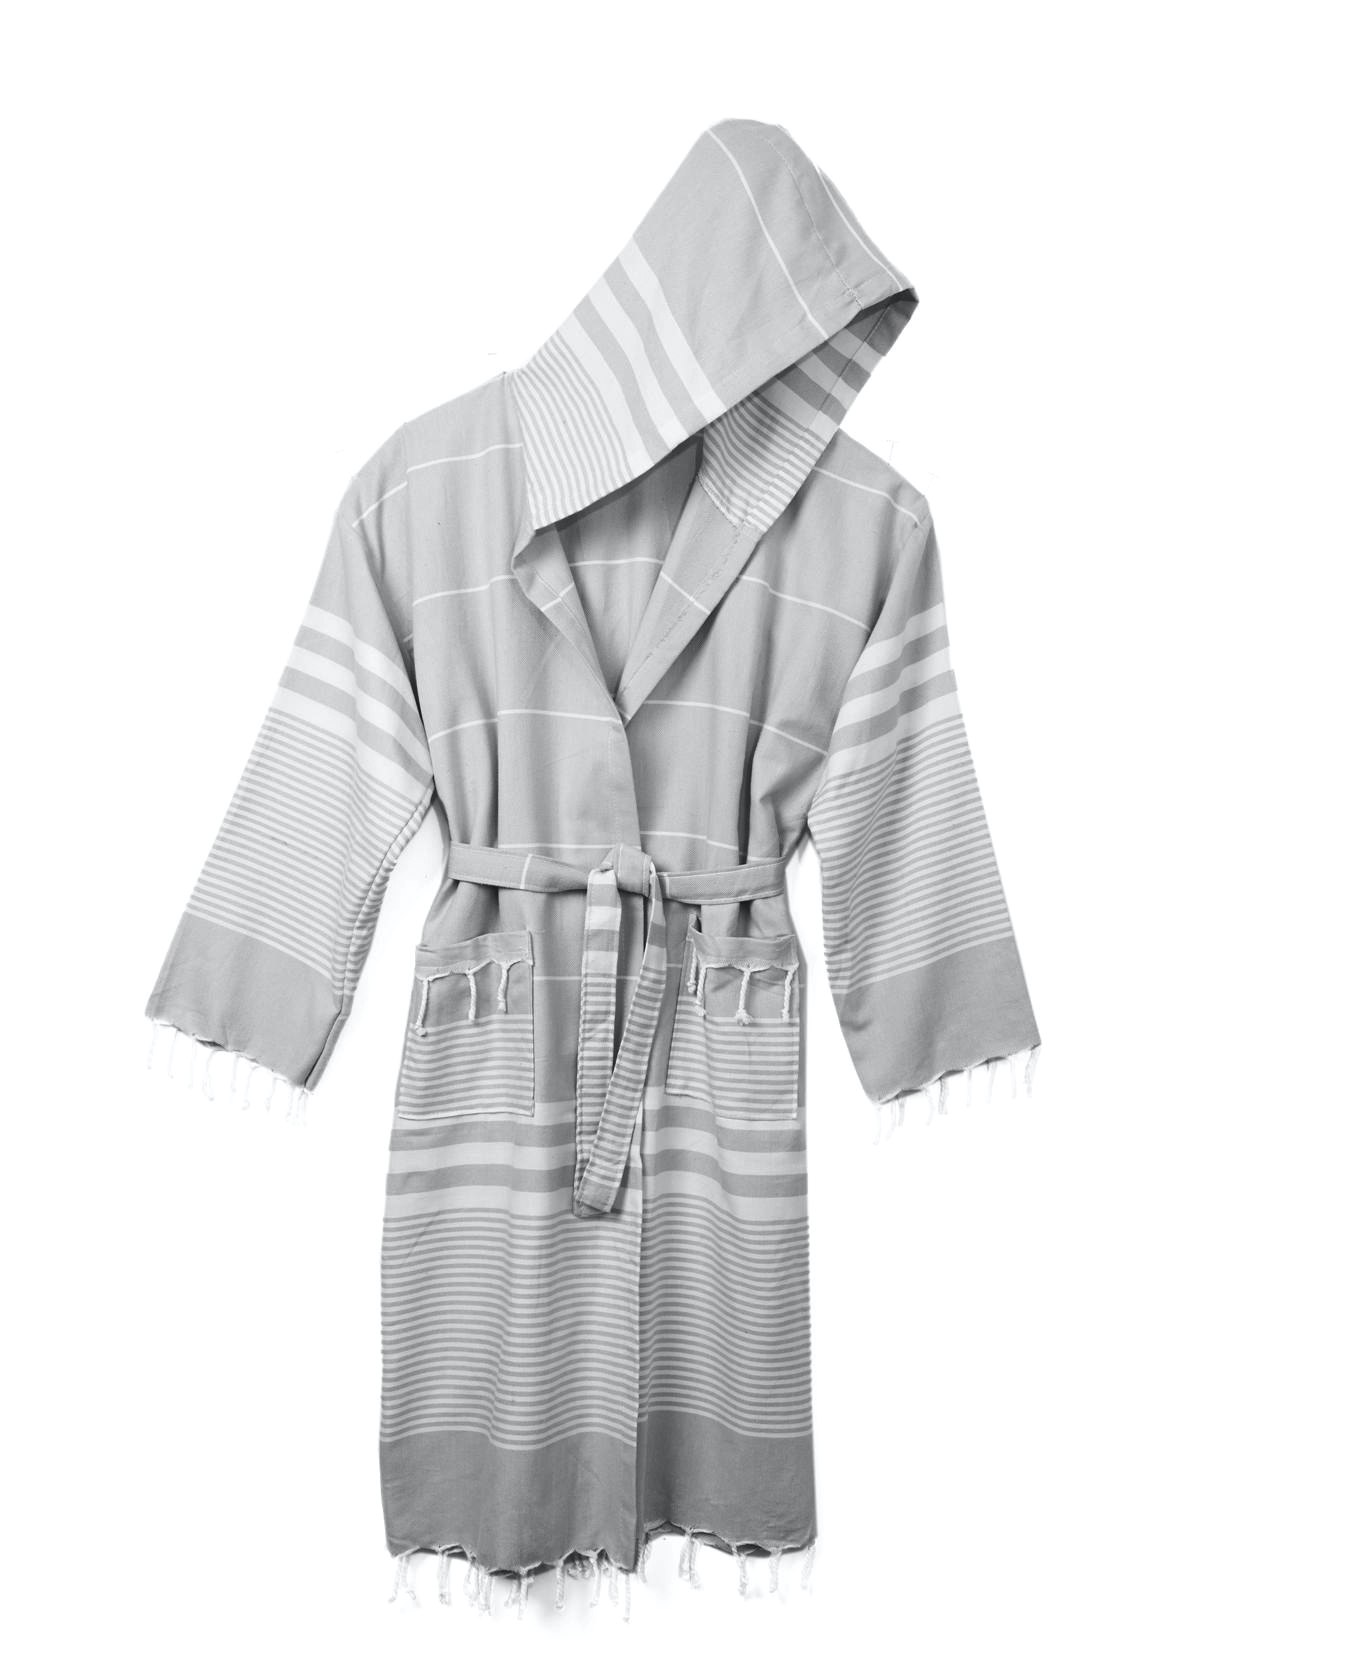 Hooded Robe Pattern Interesting Decorating